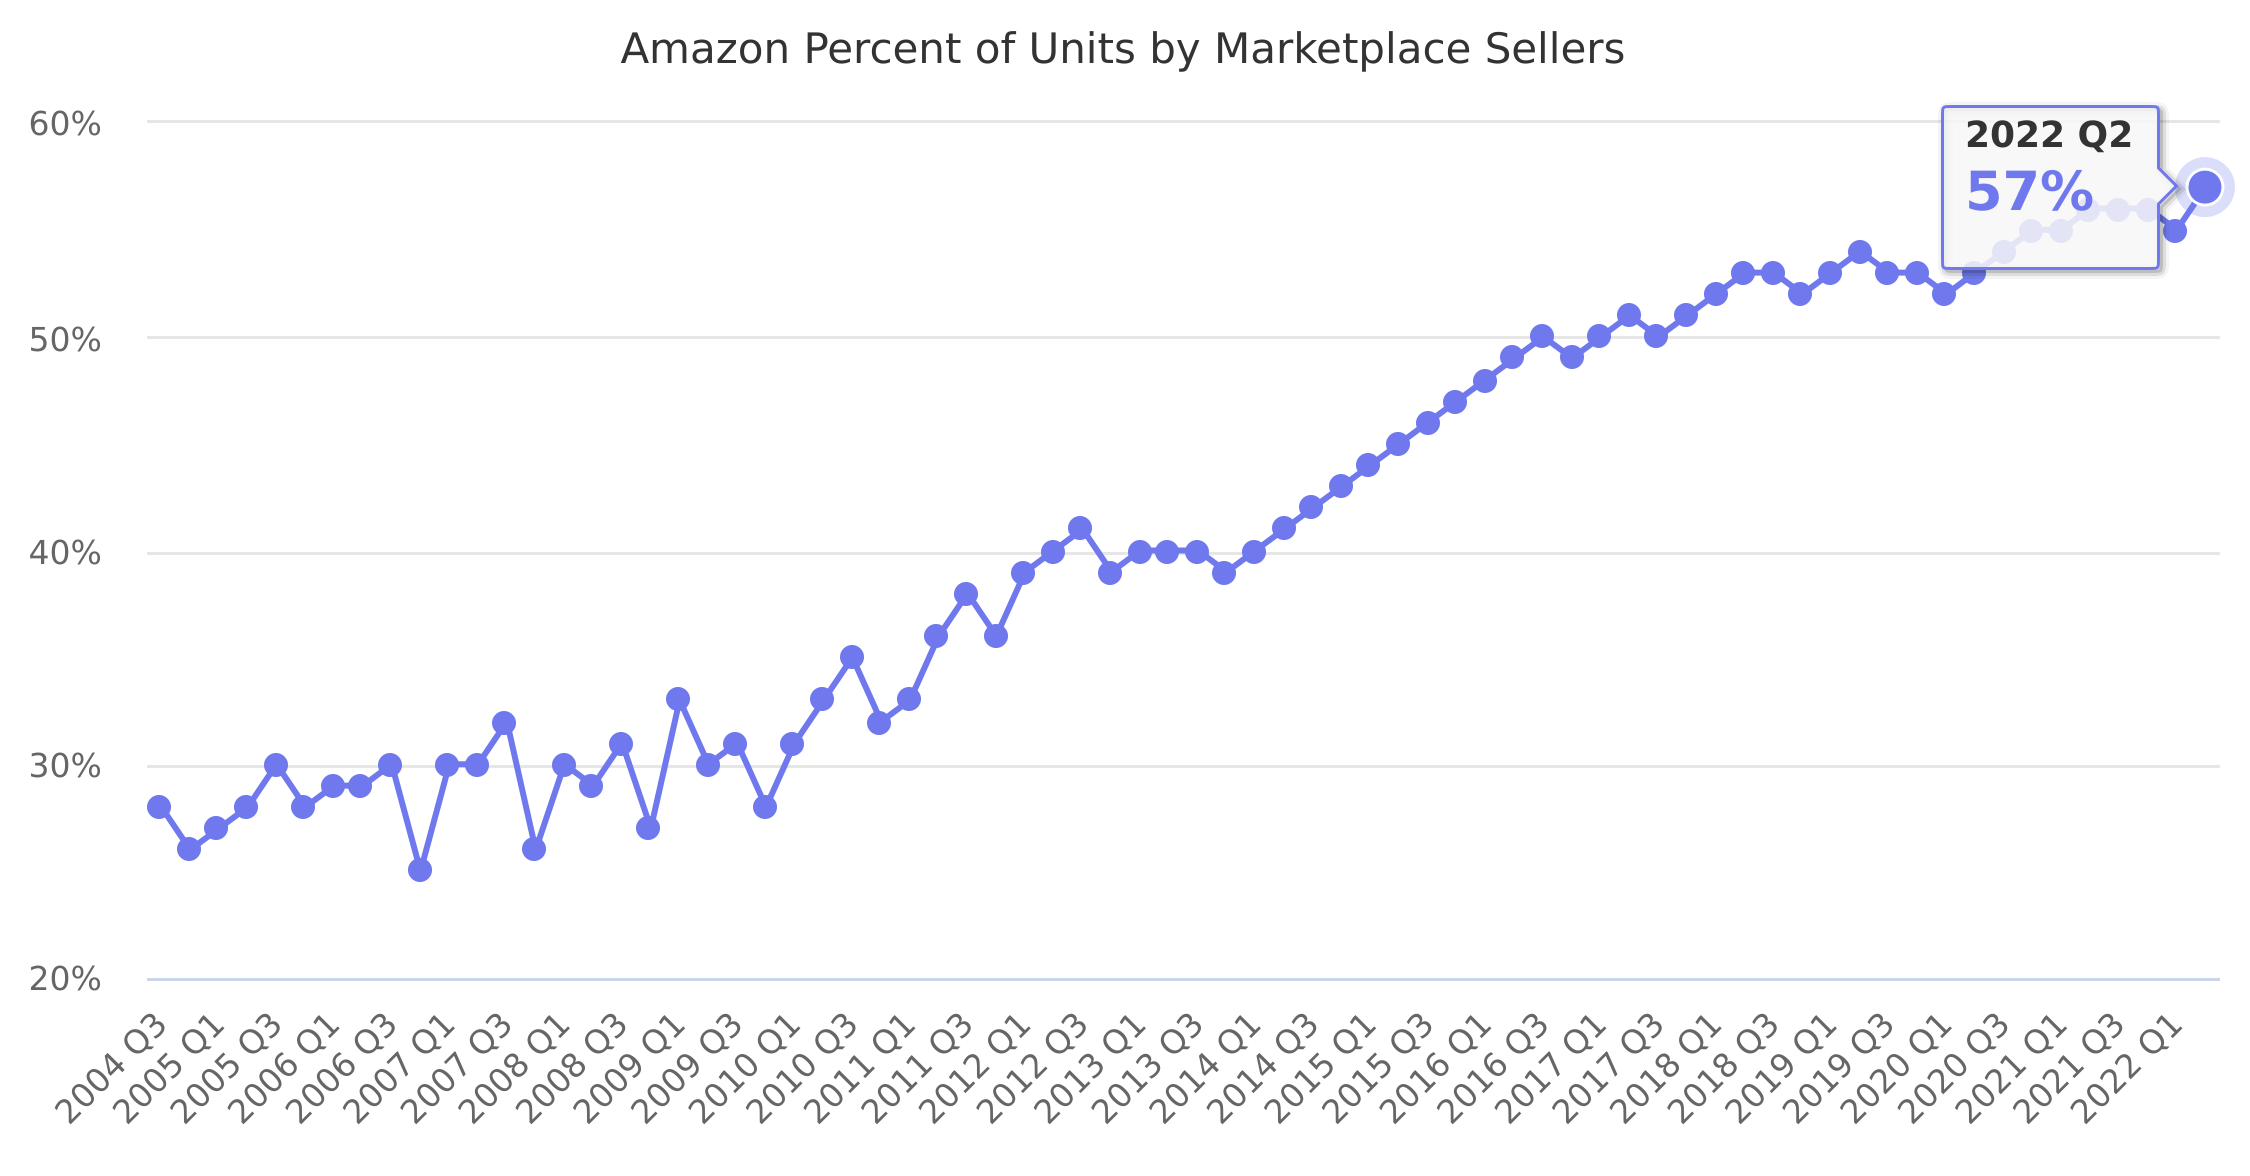 Amazon Percent of Units by Marketplace Sellers 2004-2017